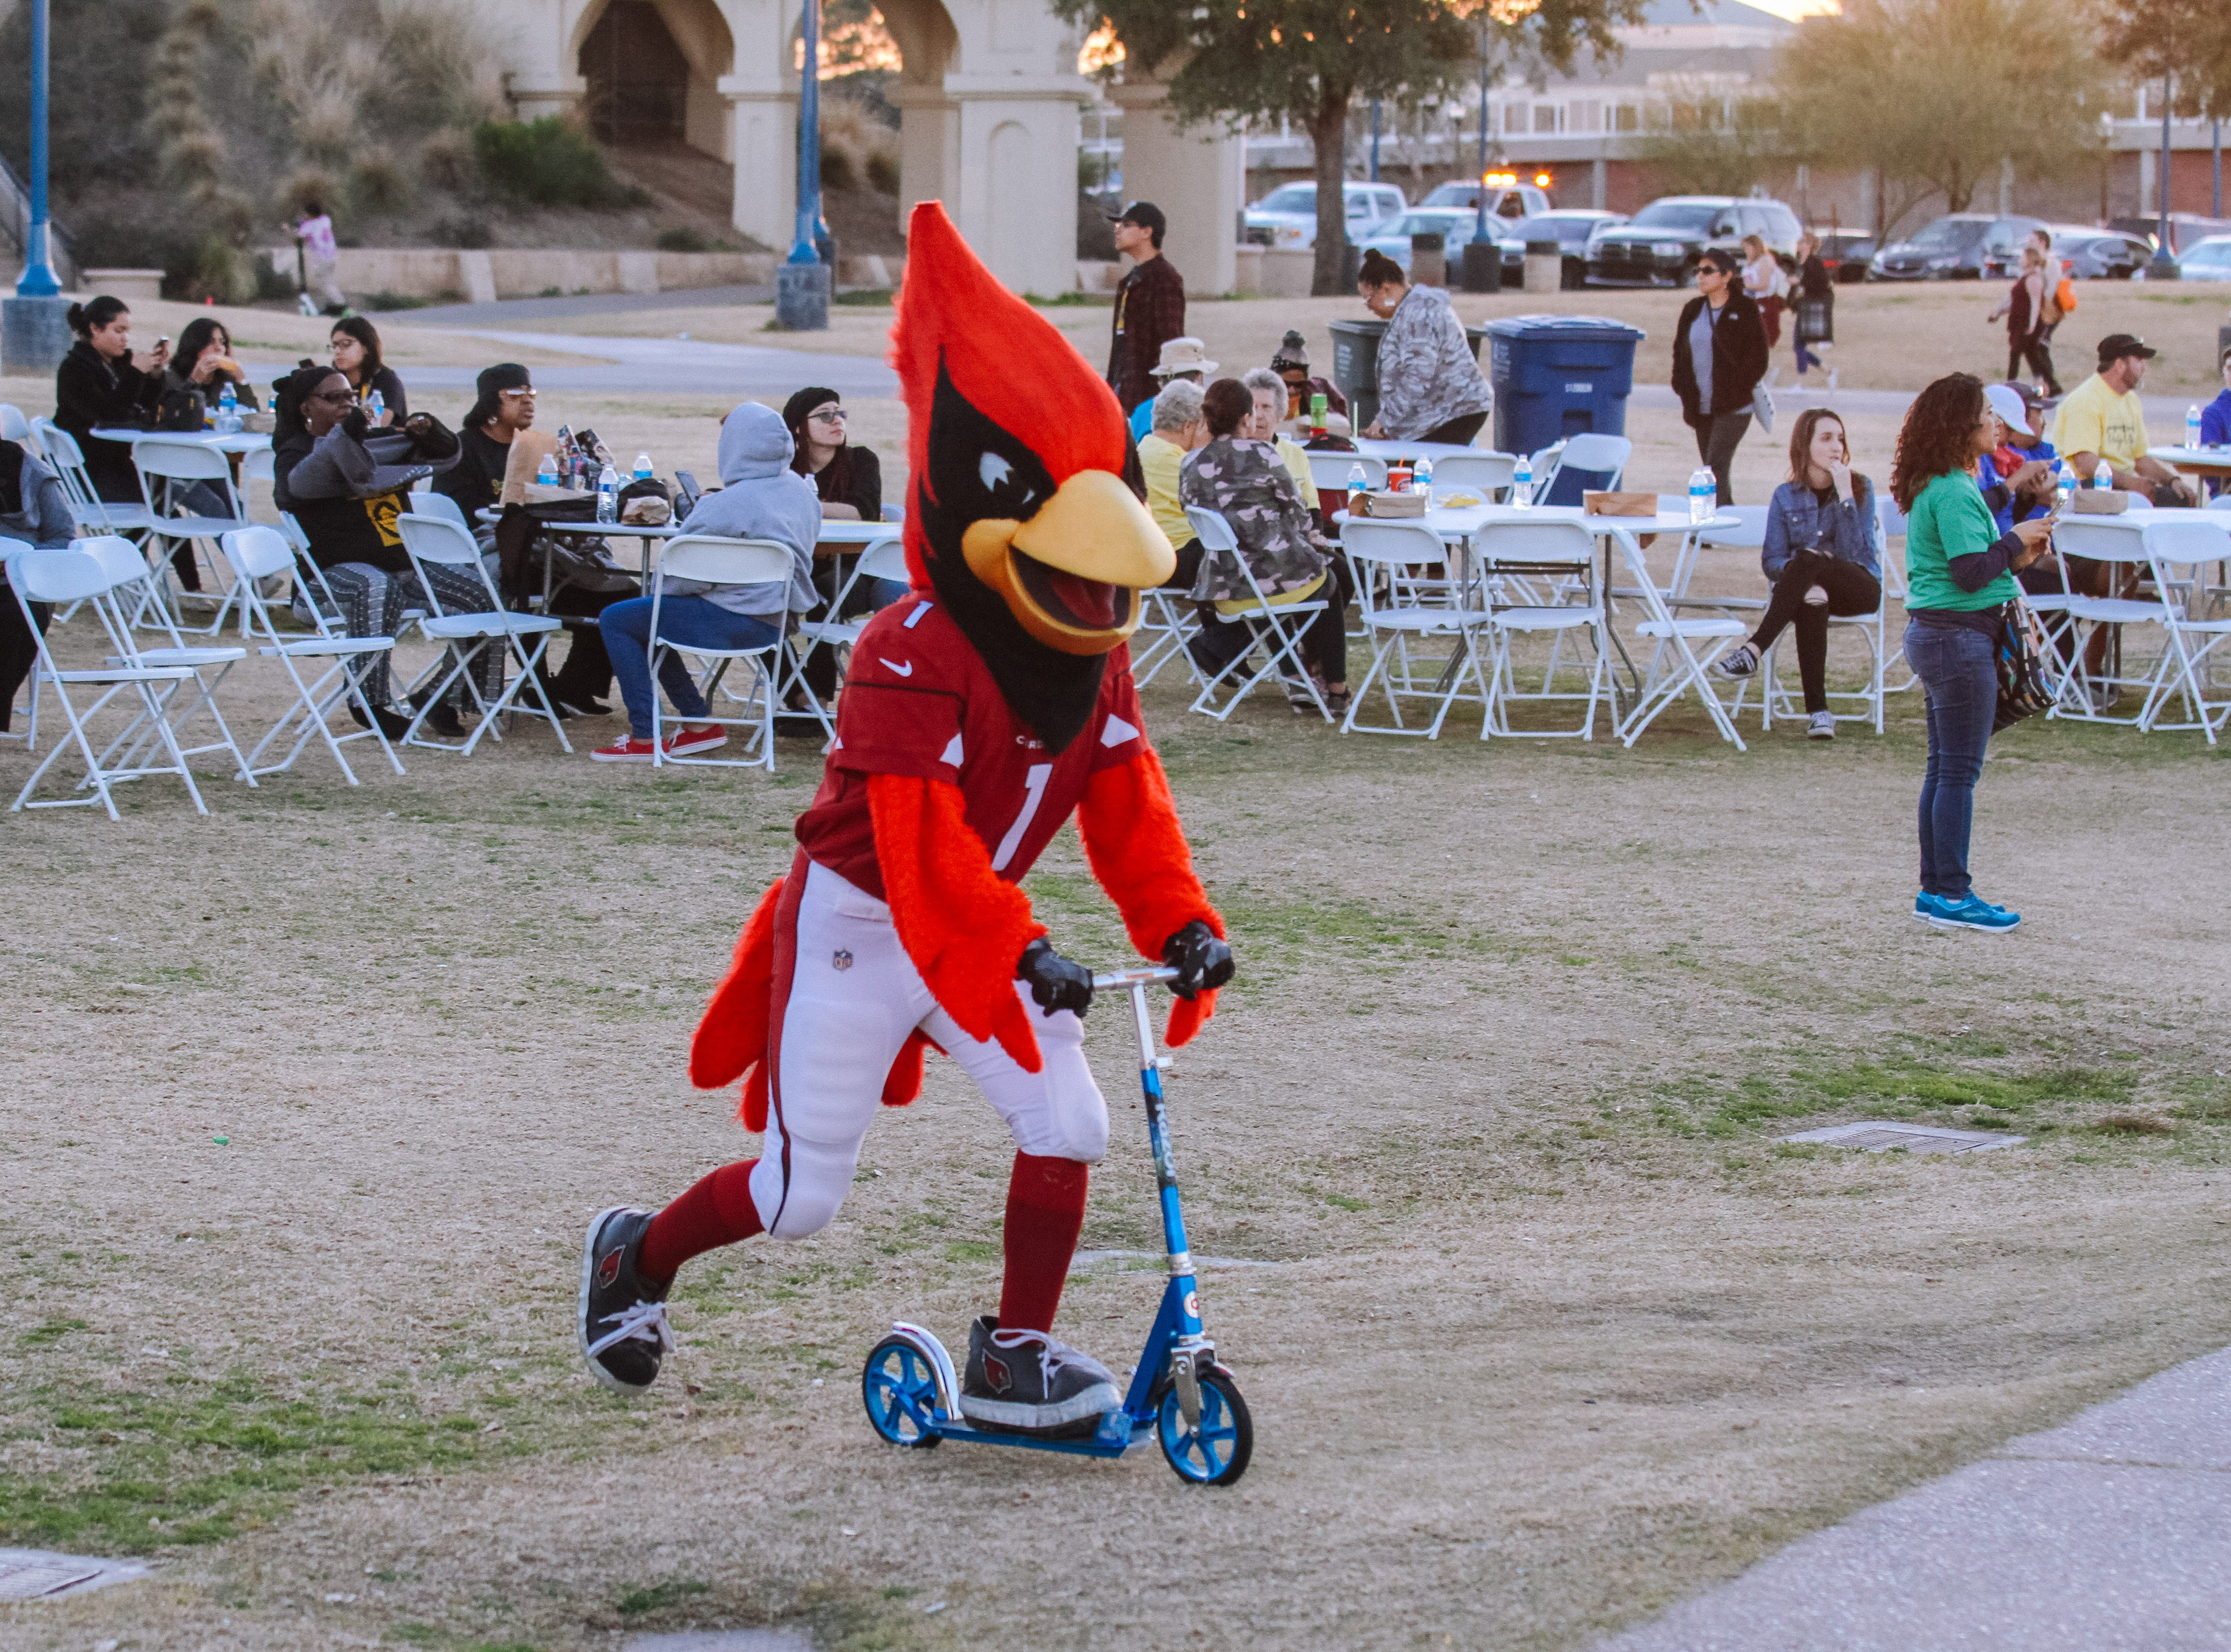 Big Red rides a scooter while at the Unity Walk 2019 at Tempe Beach Park, in Tempe, Arizona on Saturday, Jan. 26, 2019.